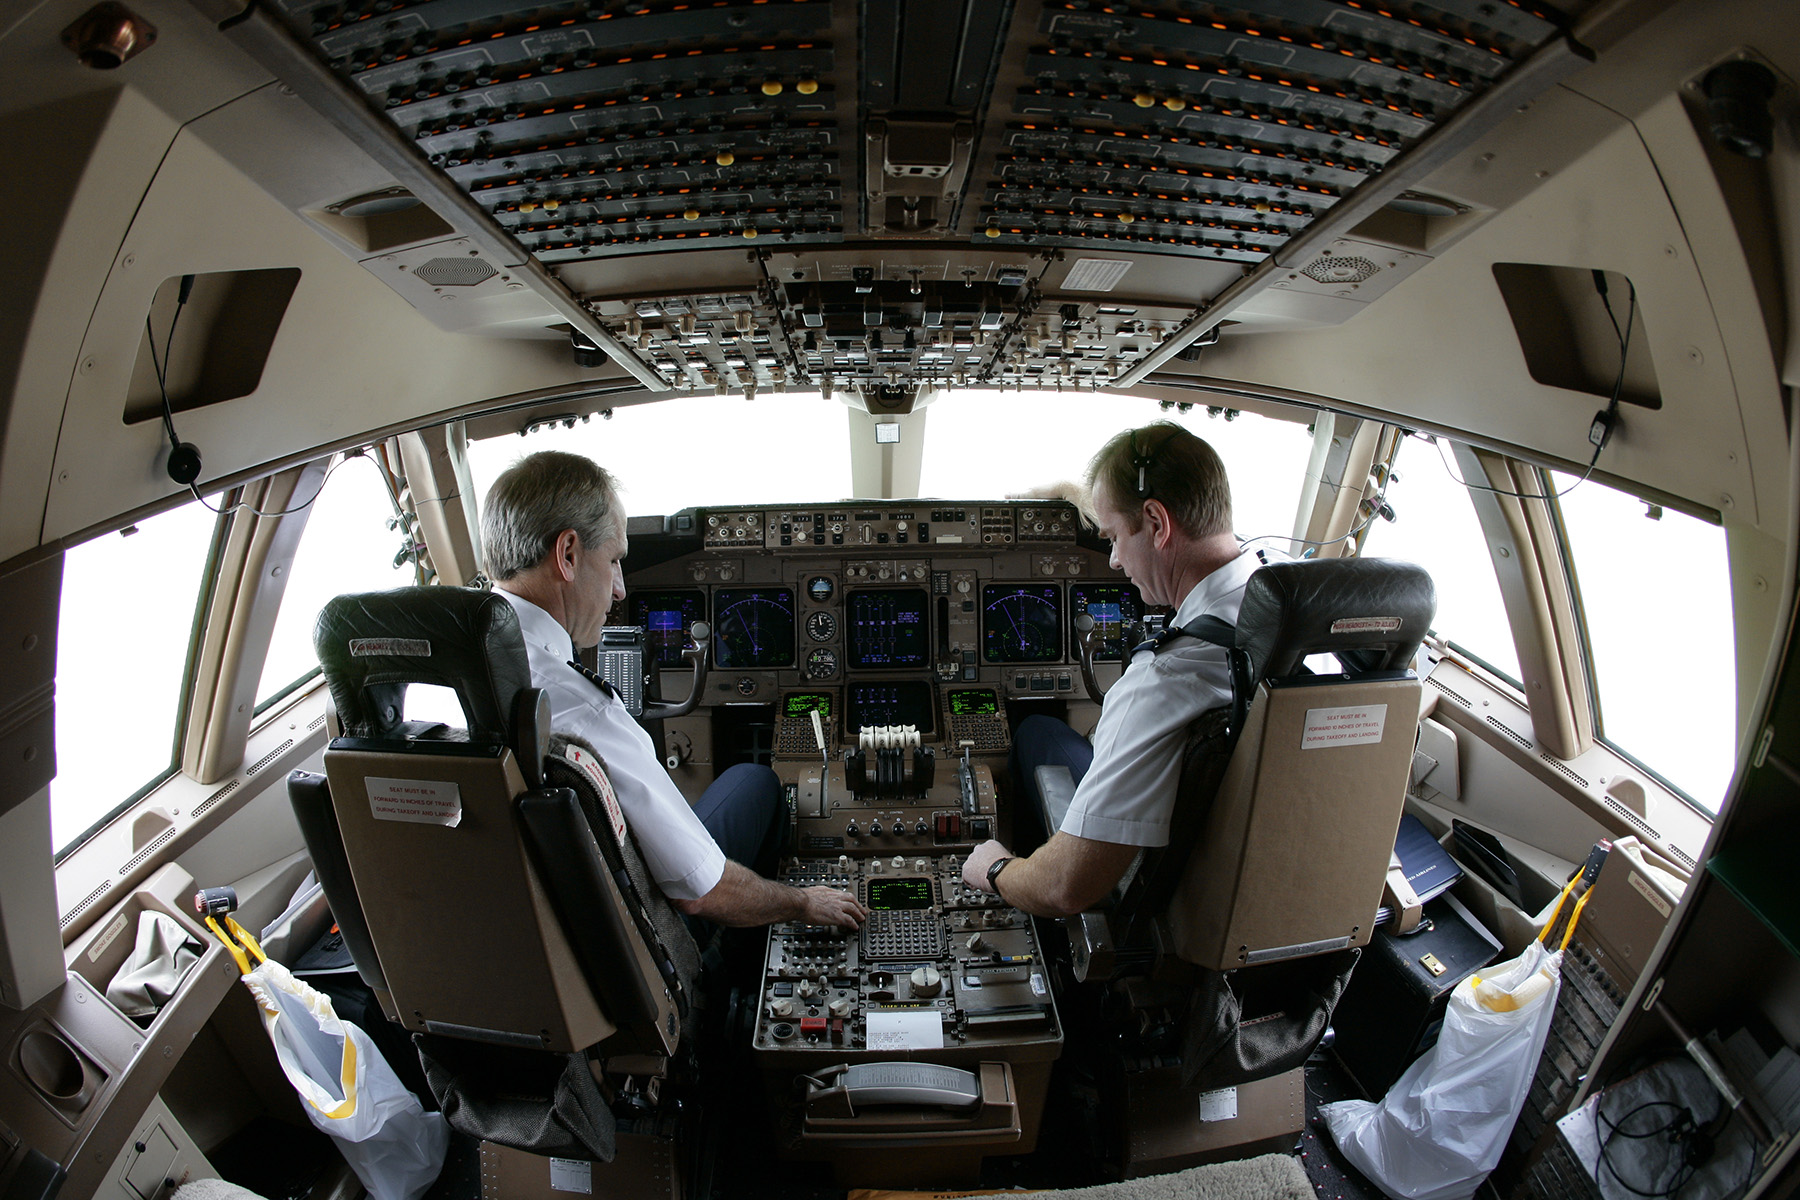 Pilots fly inside the cockpit of a commercial passenger 747-400 airplane.Photo by Brooks Kraft/Corbis